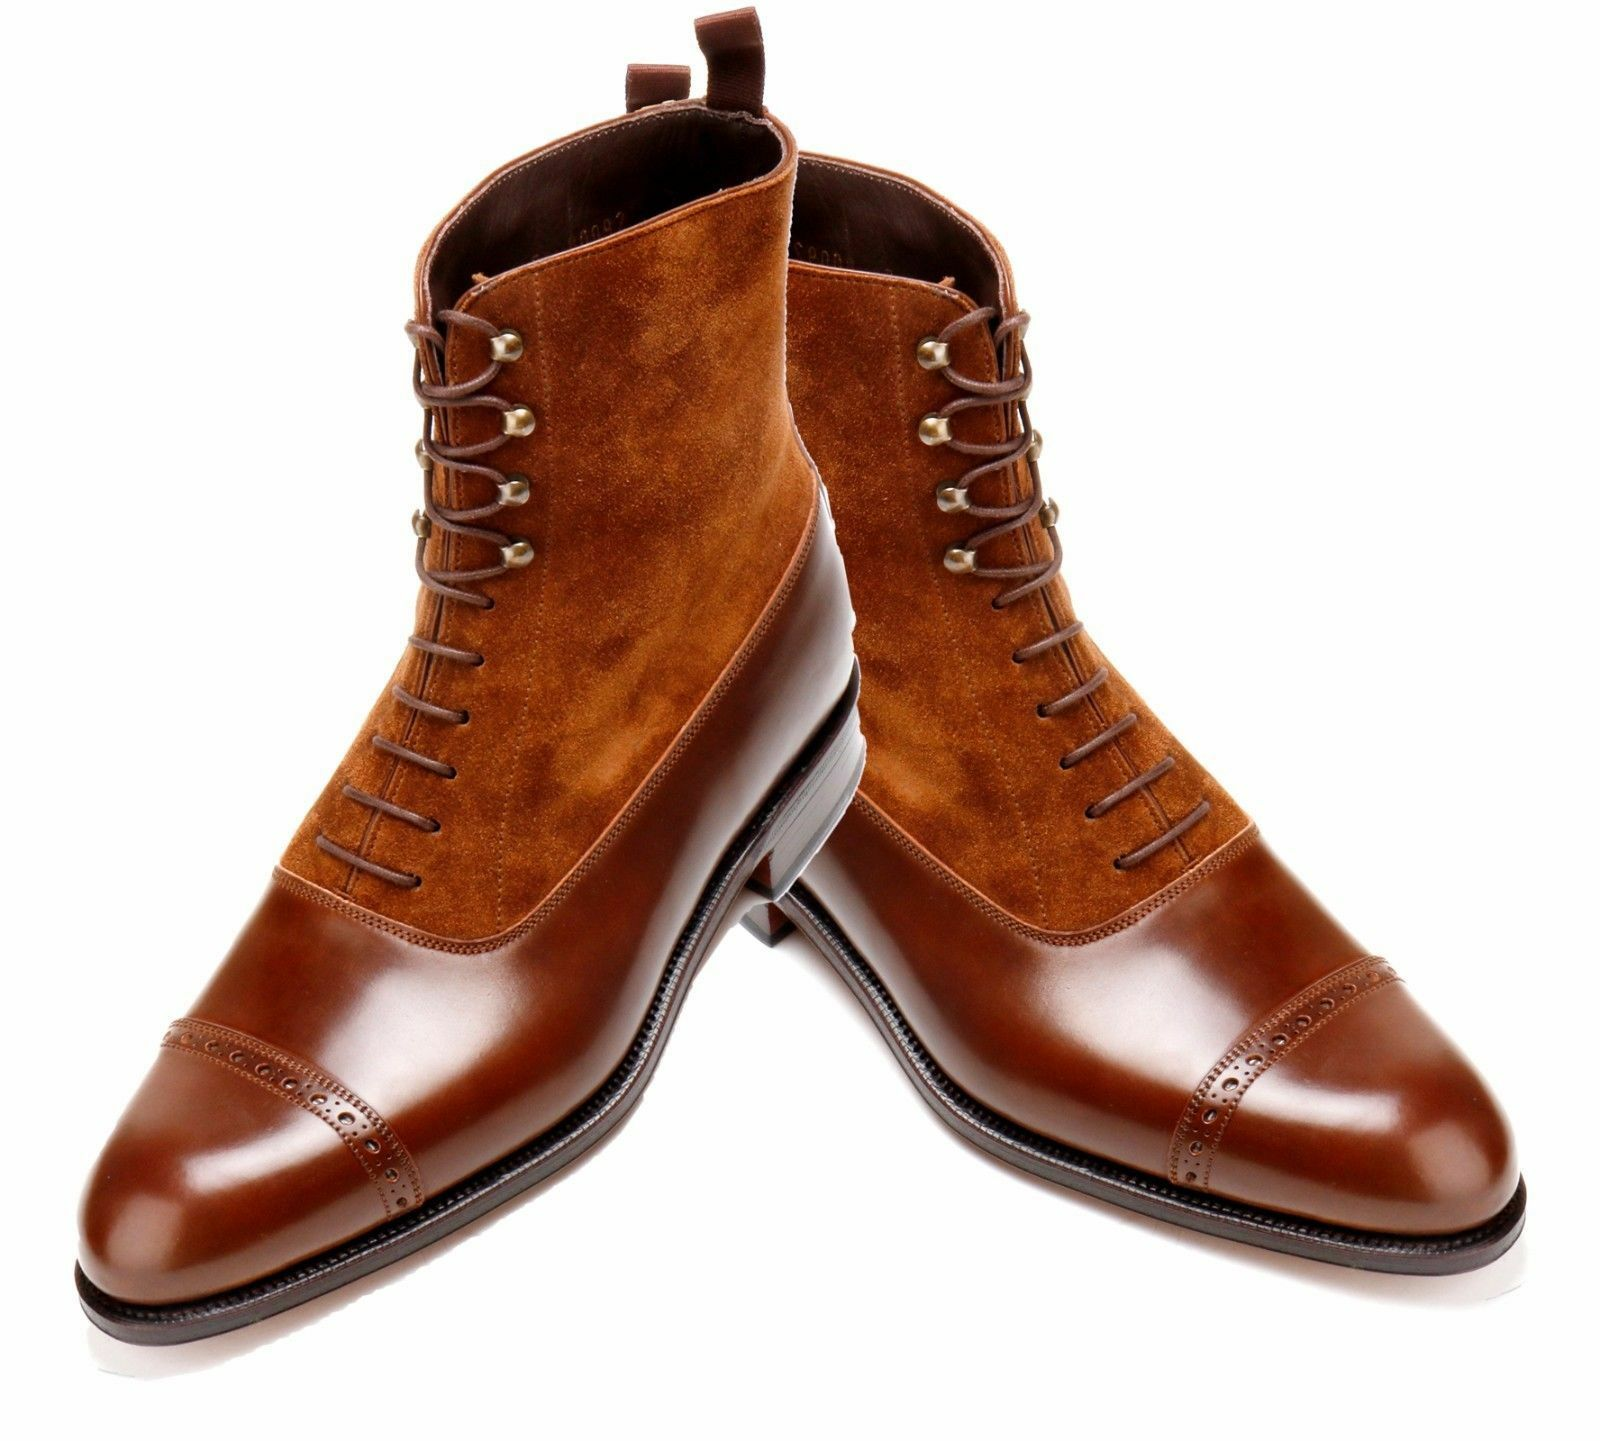 MEN HANDMADE SUEDE & LEATHER SHOES SHOES SHOES TWO TONE CAP TOE LACE UP FORMAL DRESS BOOTS eeb425